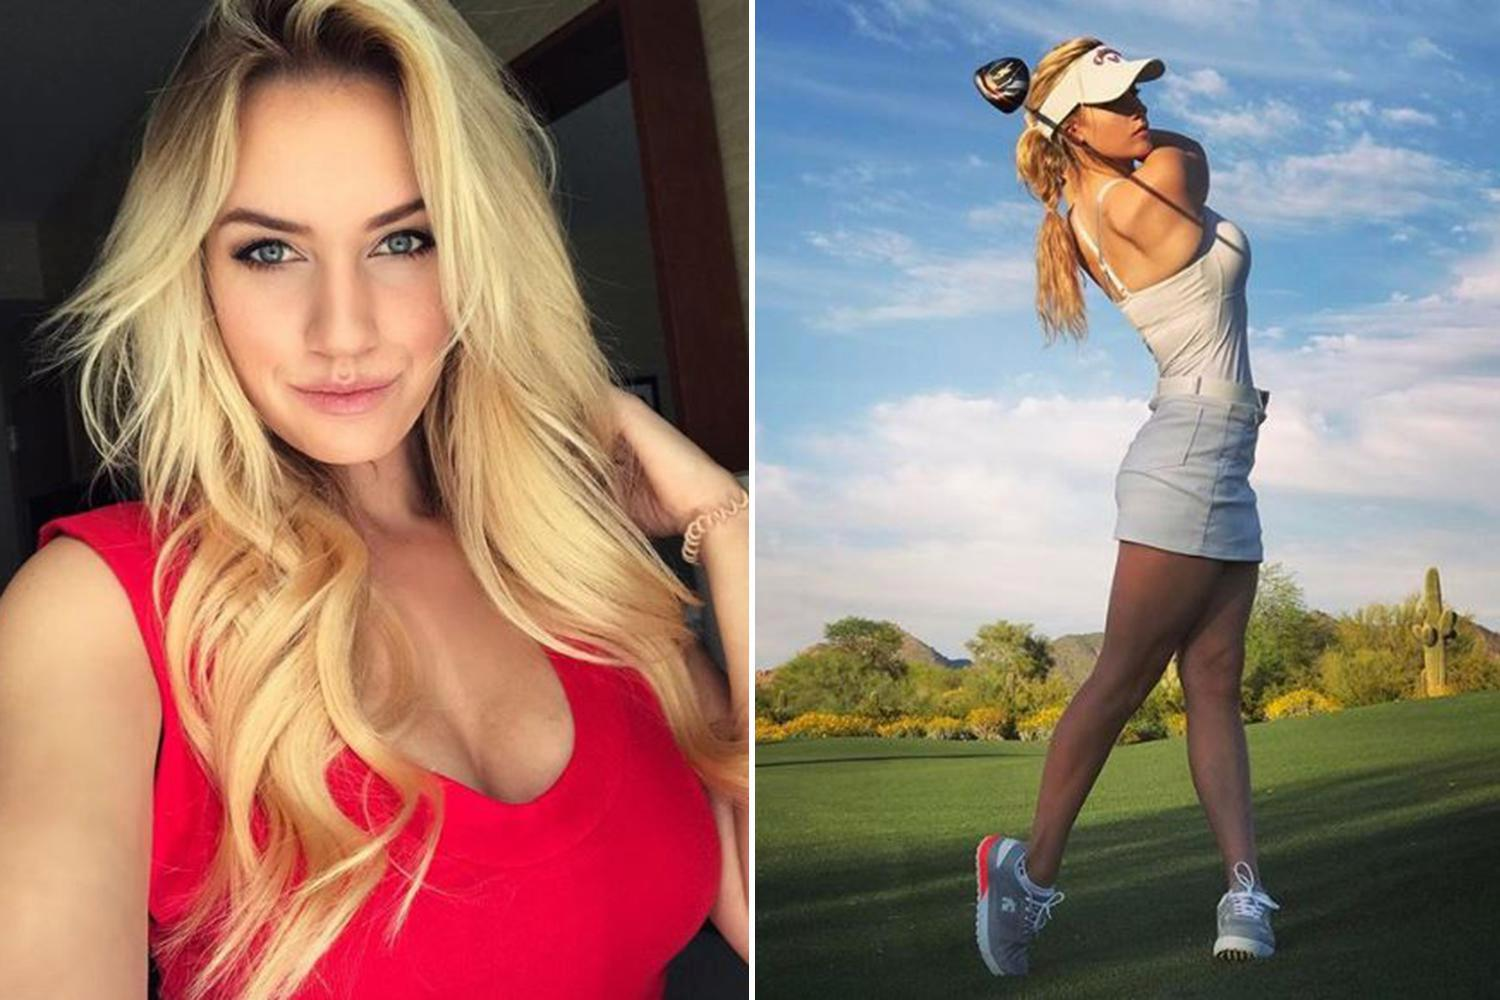 Golfer Paige Spiranac reveals she had death threats and was blackmailed